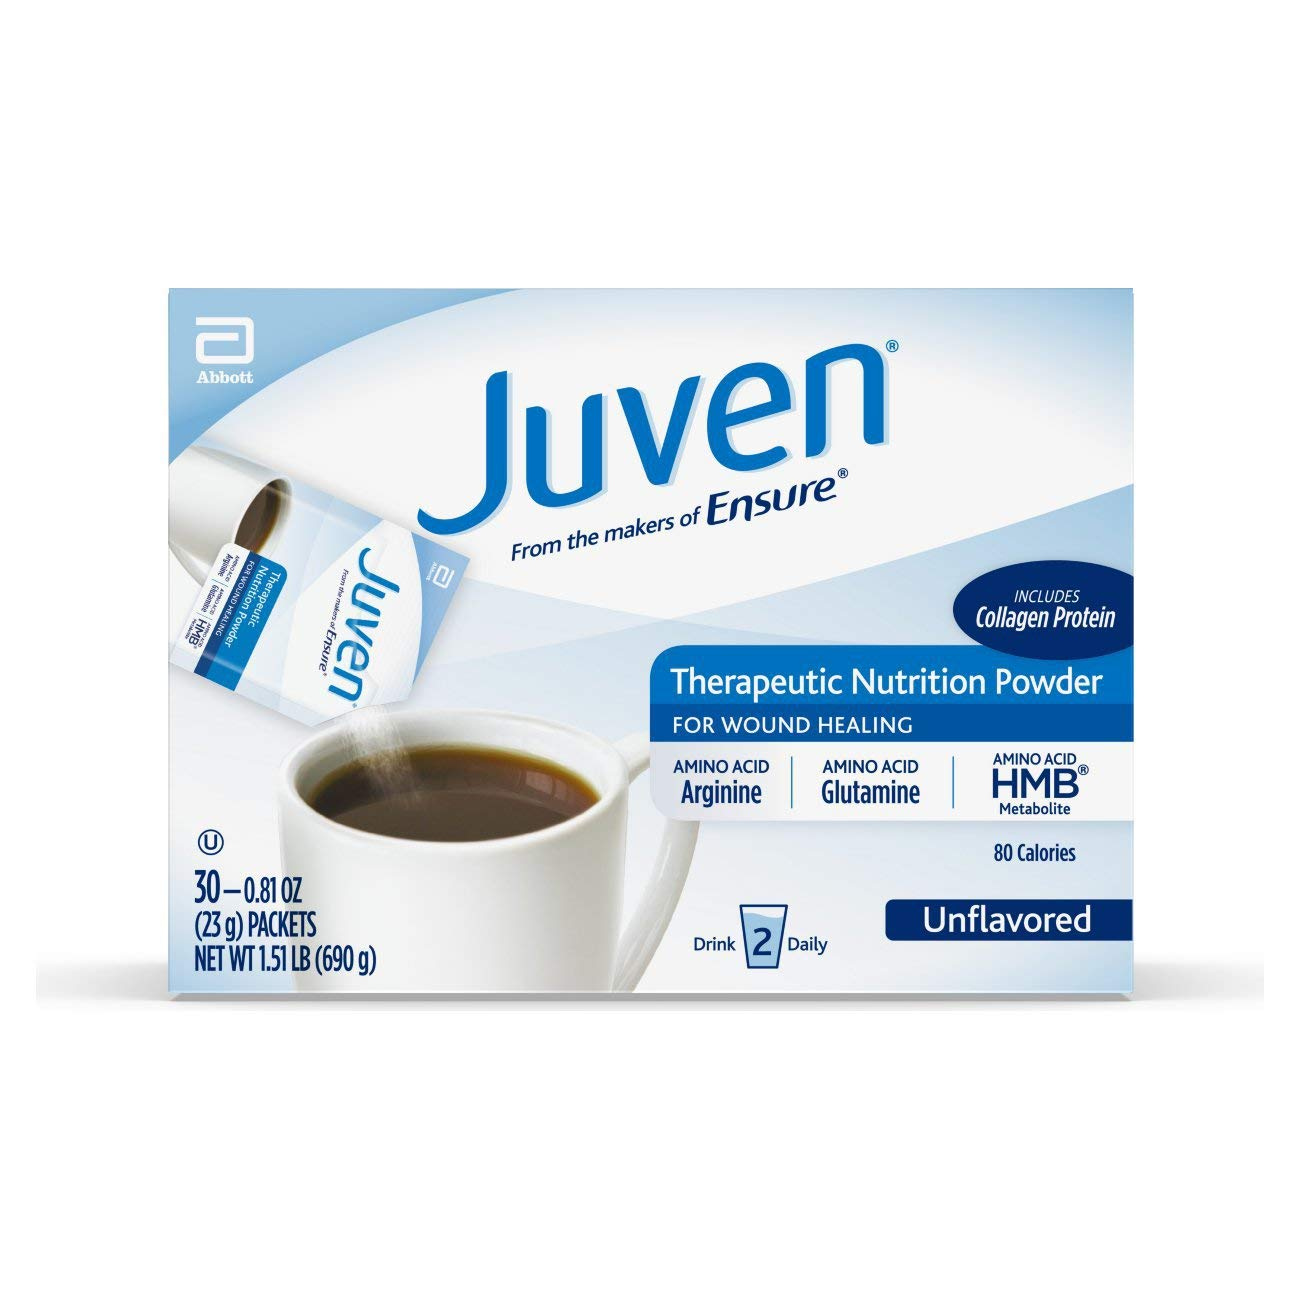 Juven Therapeutic Nutrition Drink Mix Powder for Wound Healing Support, Includes Collagen Protein, Unflavored, 30 Count